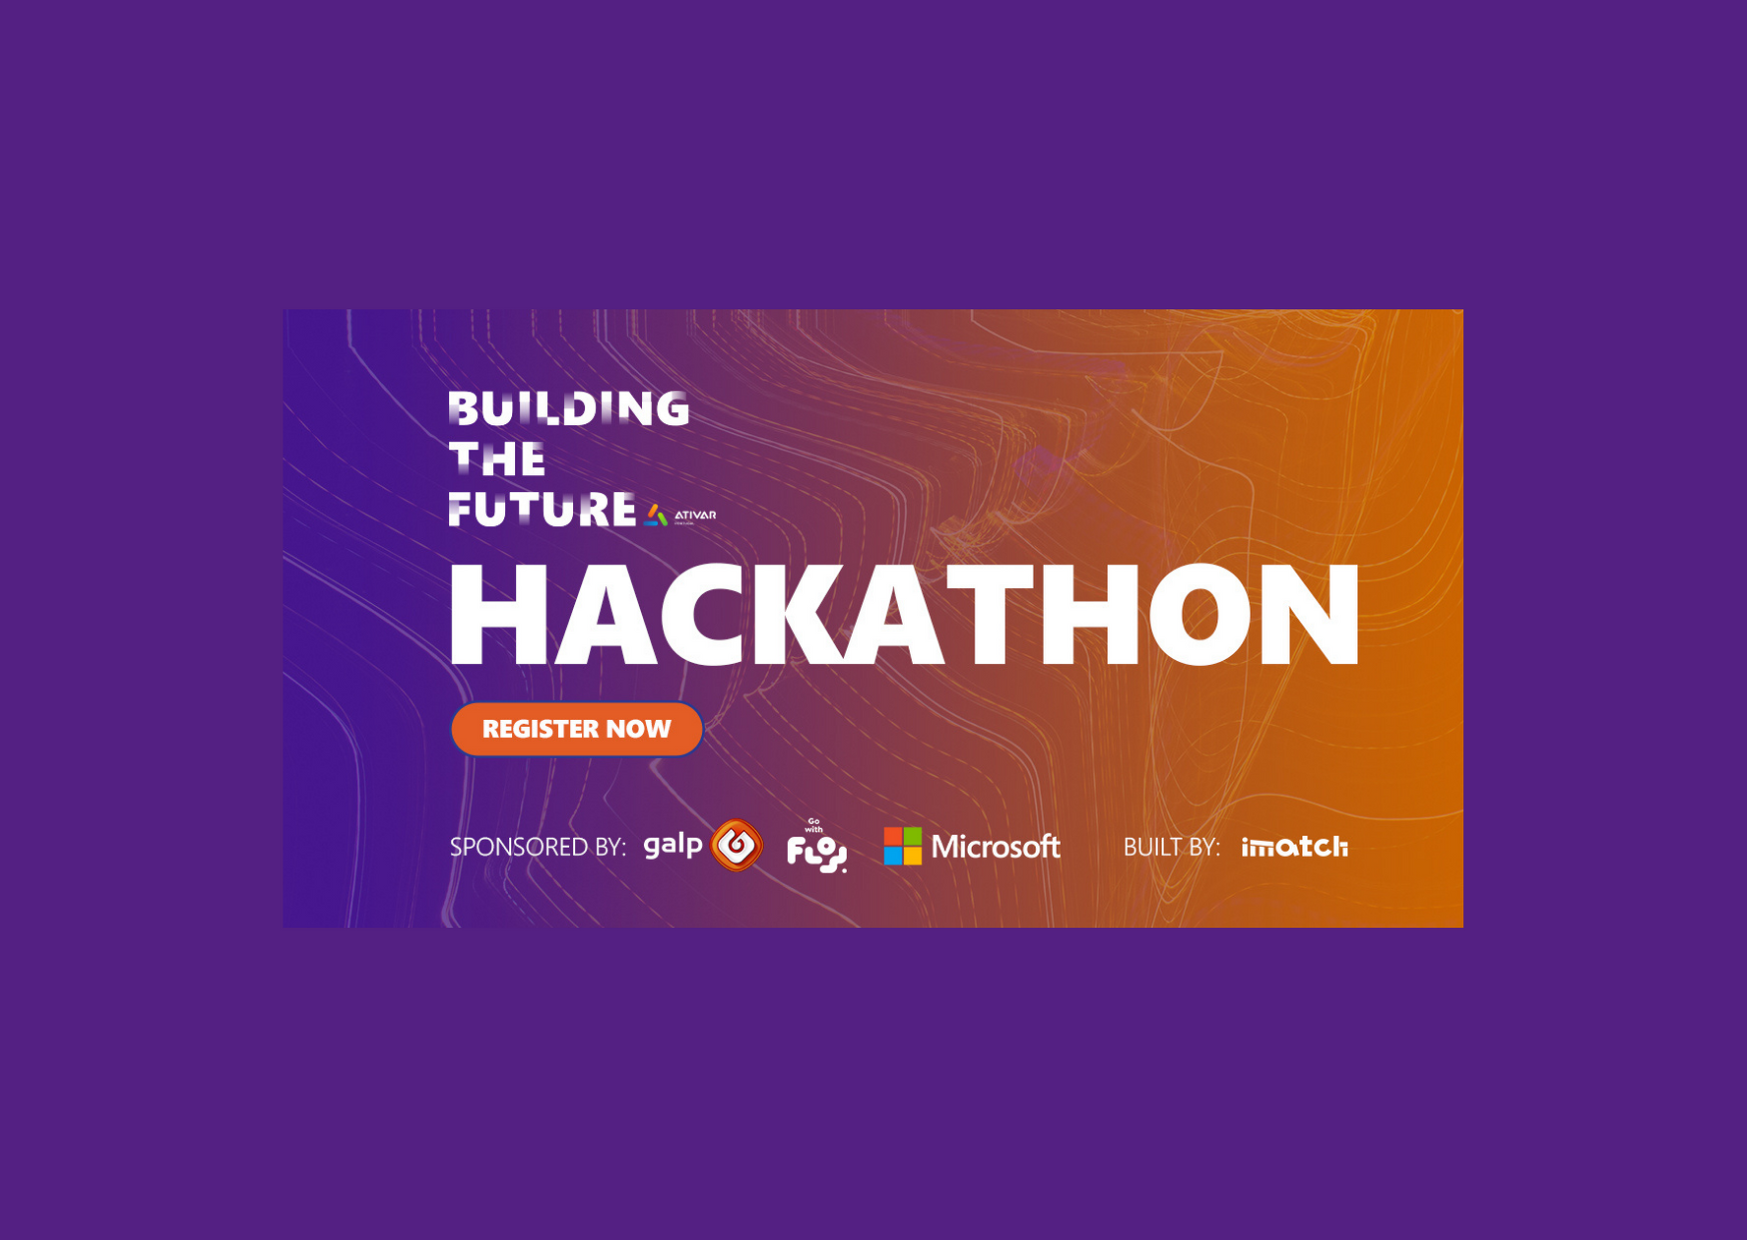 GoWithFlow joins Galp and Microsoft for the Building The Future Hackathon